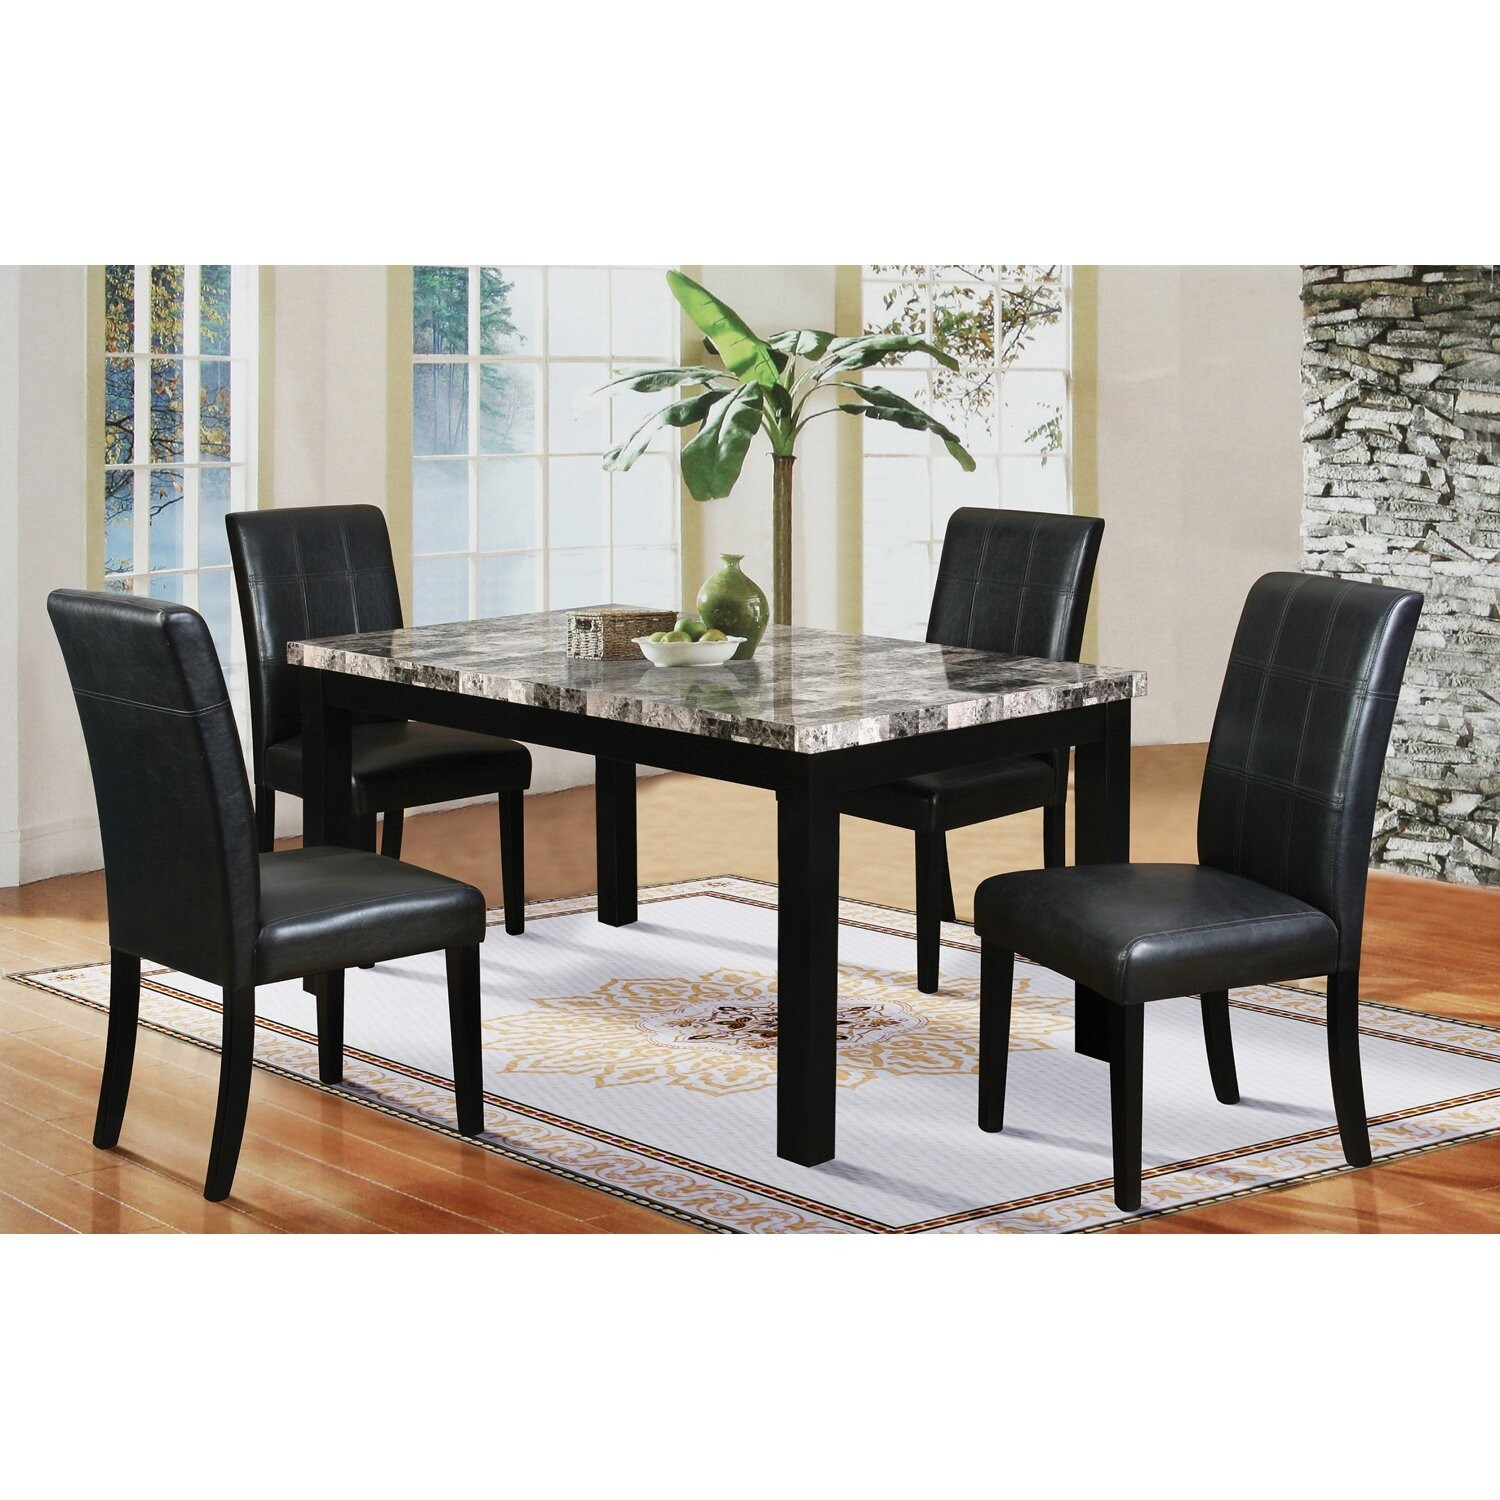 5 Piece Faux Marble Dining Set & Marble Kitchen Table And Chairs - Foter